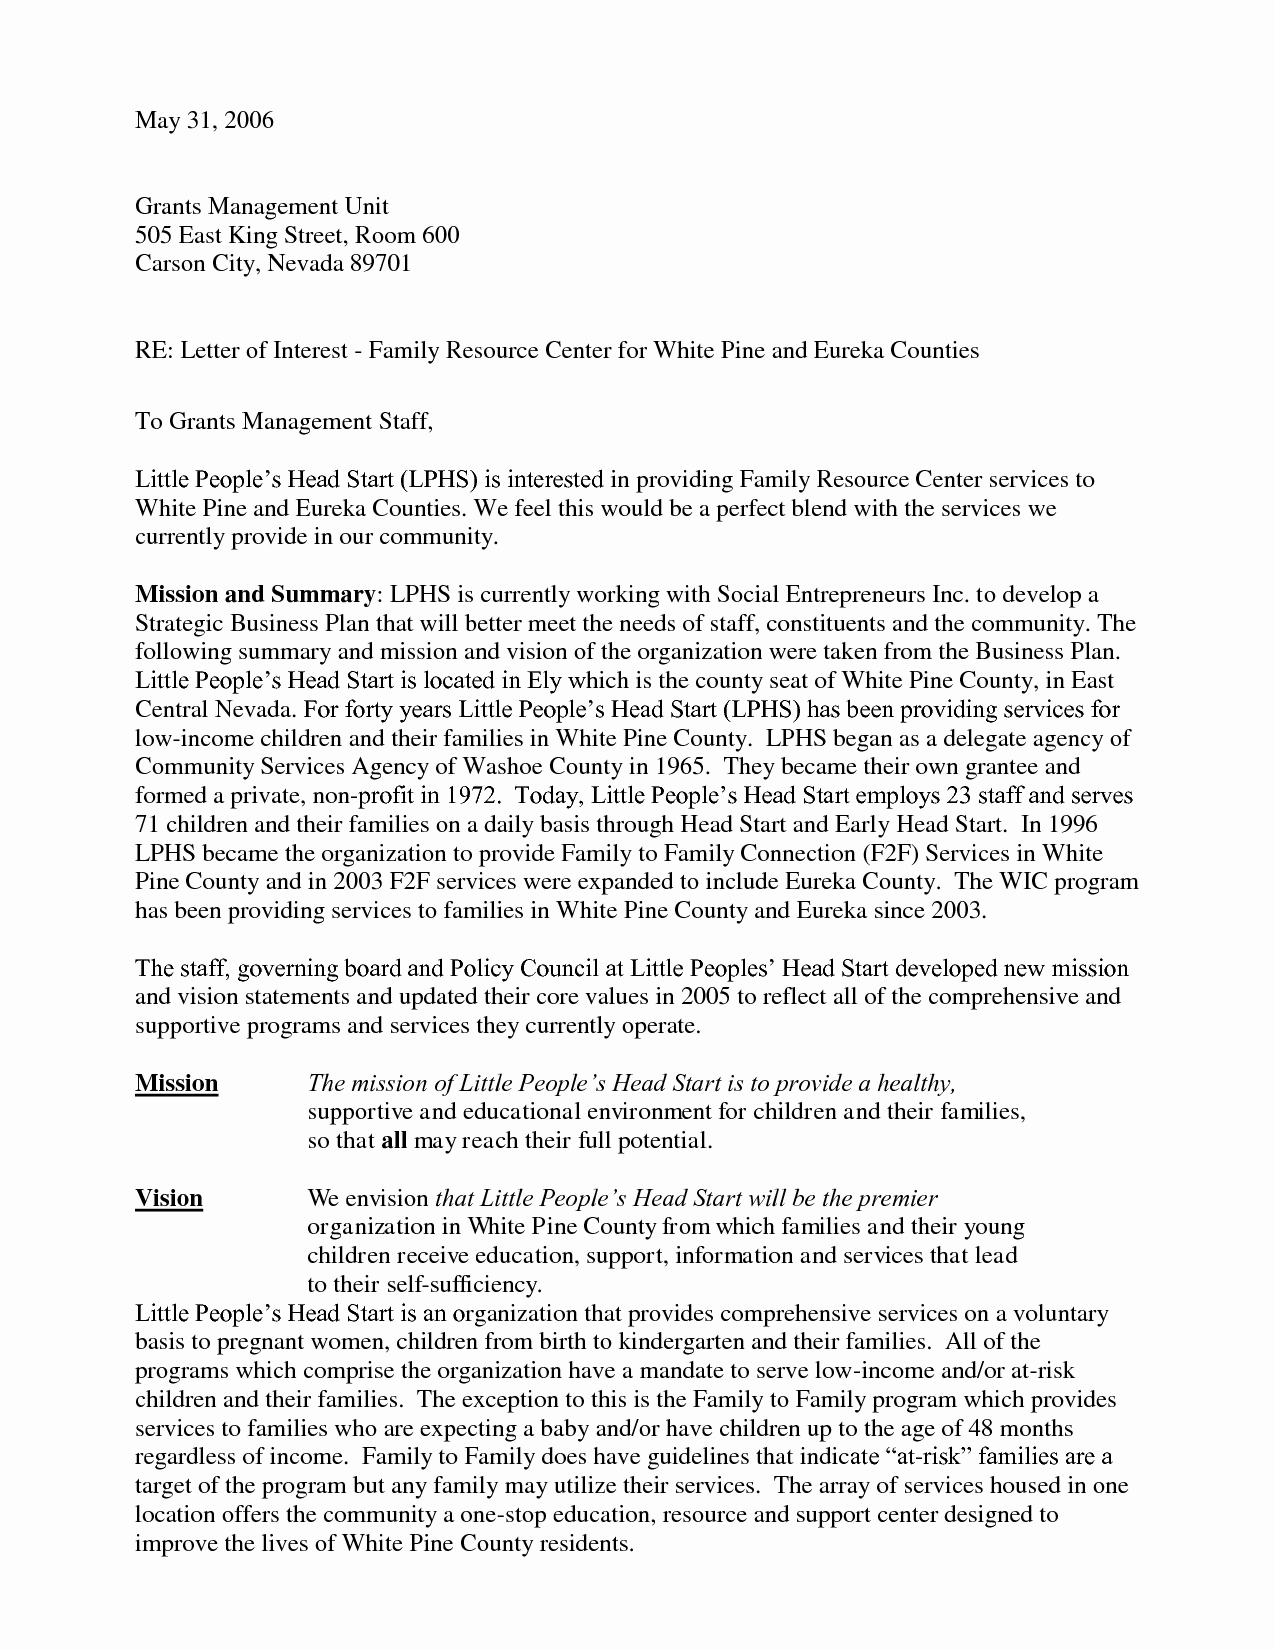 Professional Letter Of Interest Best Of How to Write A Cover Letter Of Interest Example for A Job